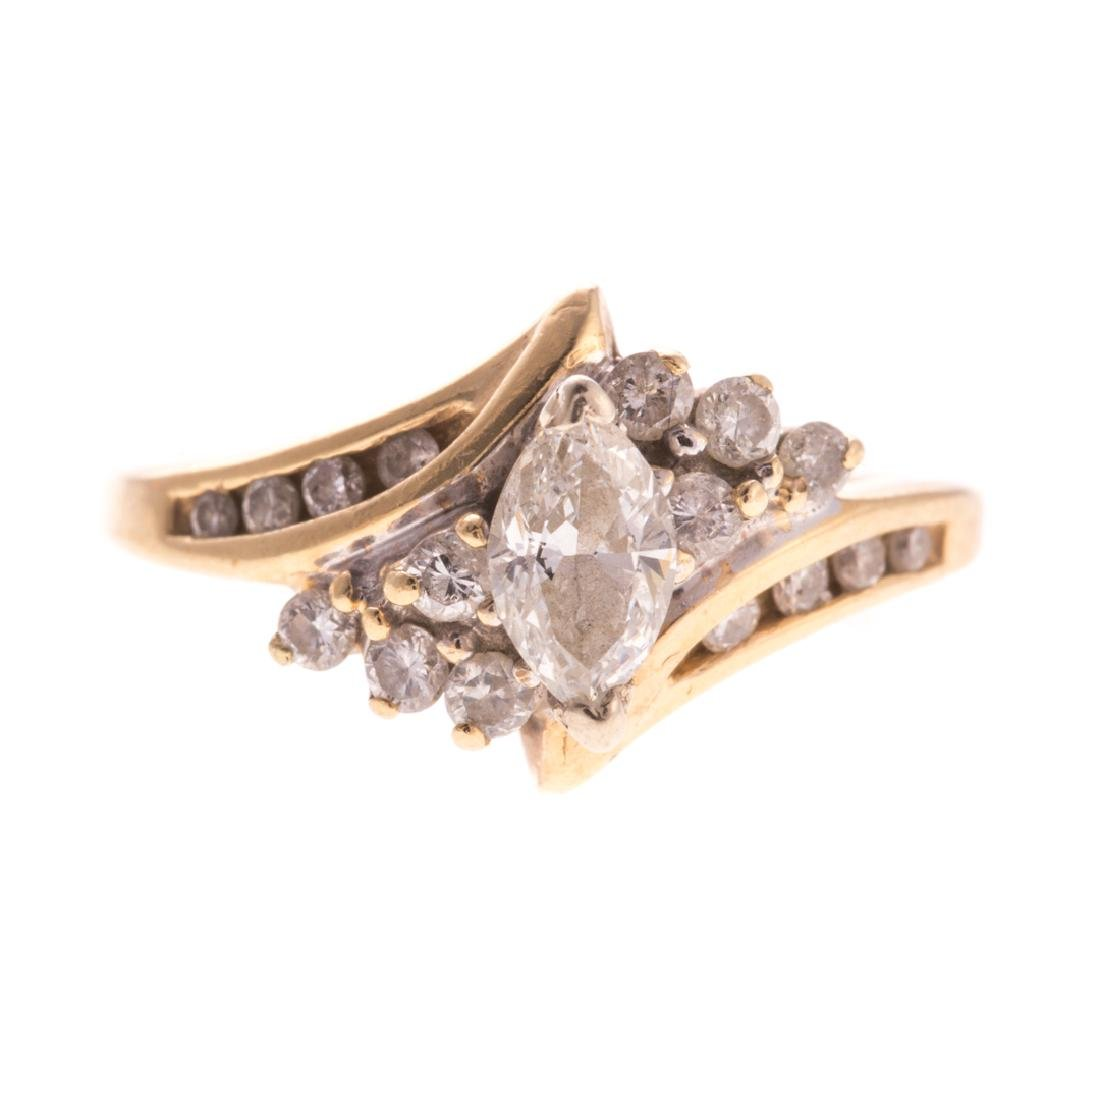 A Lady's Marquise Diamond Ring in 14K Gold